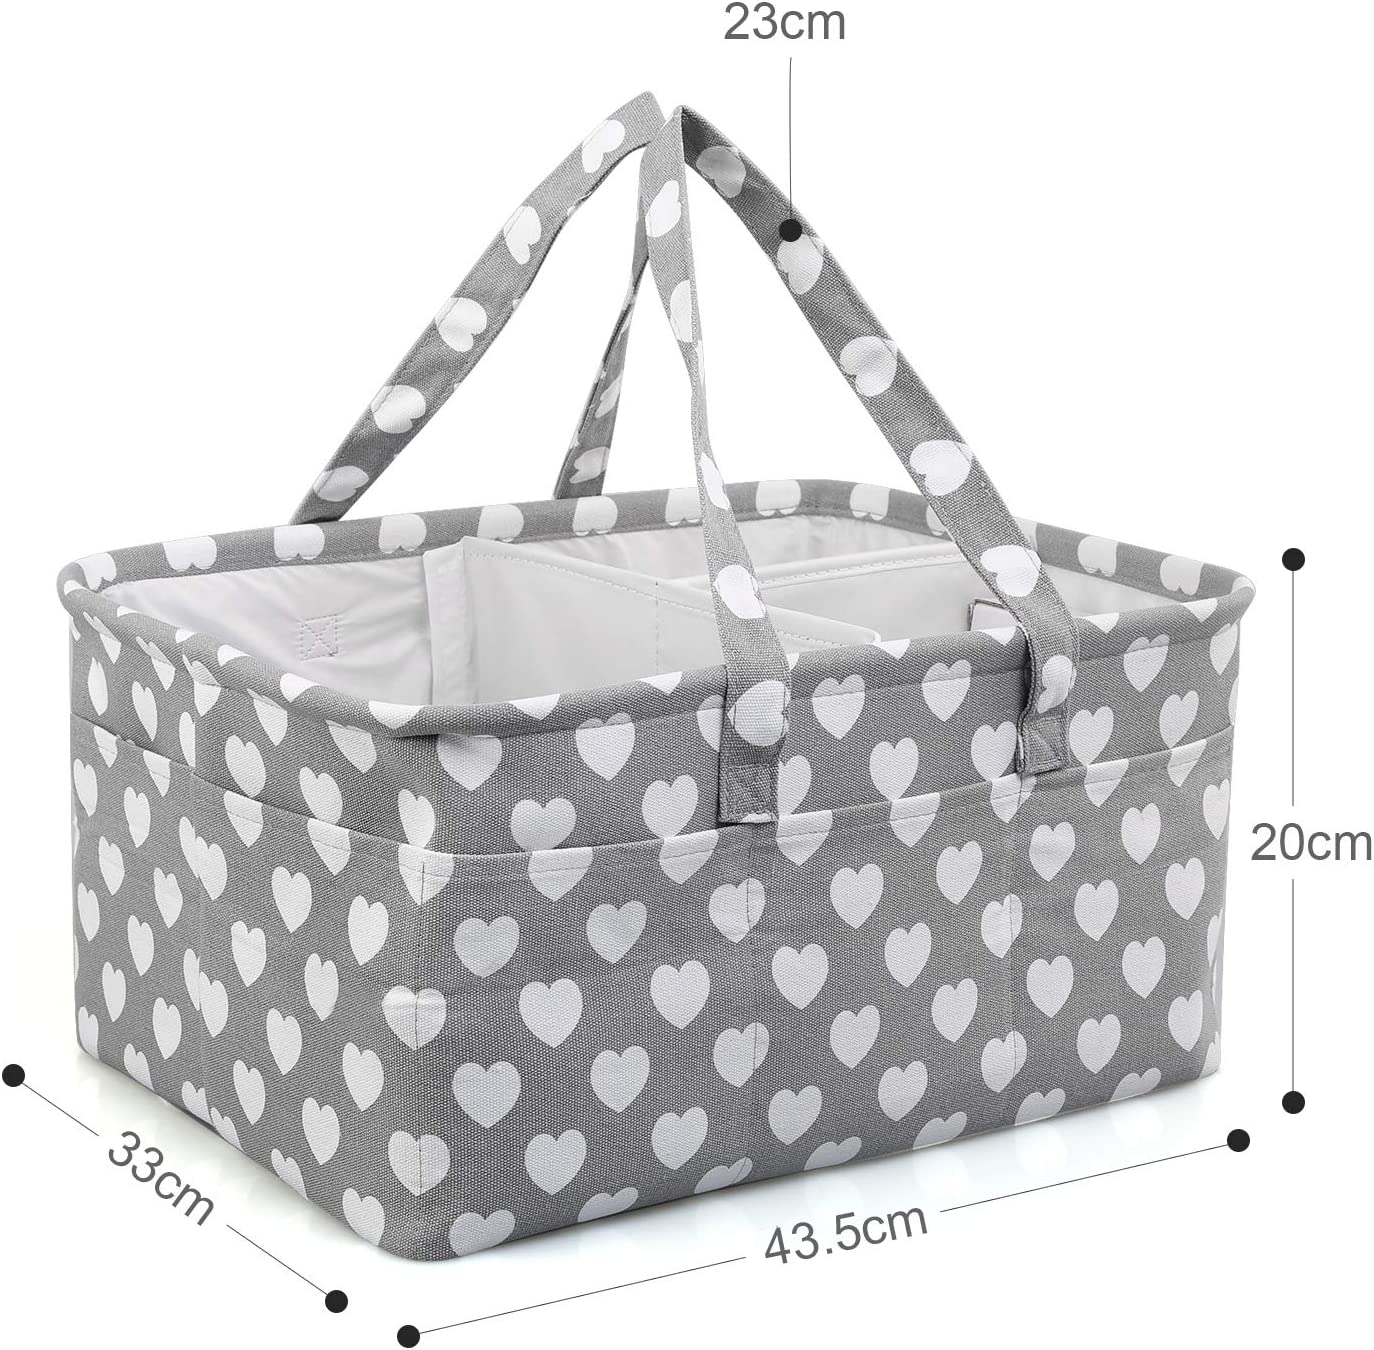 Portable Large Baby Diaper Storage Basket with Changeable Compartments,Foldable Car Travel Tote Bag for Changing Nappy LEADSTAR Baby Diaper Caddy Organizer Nursery Storage,Newborn Shower Gift Wipes